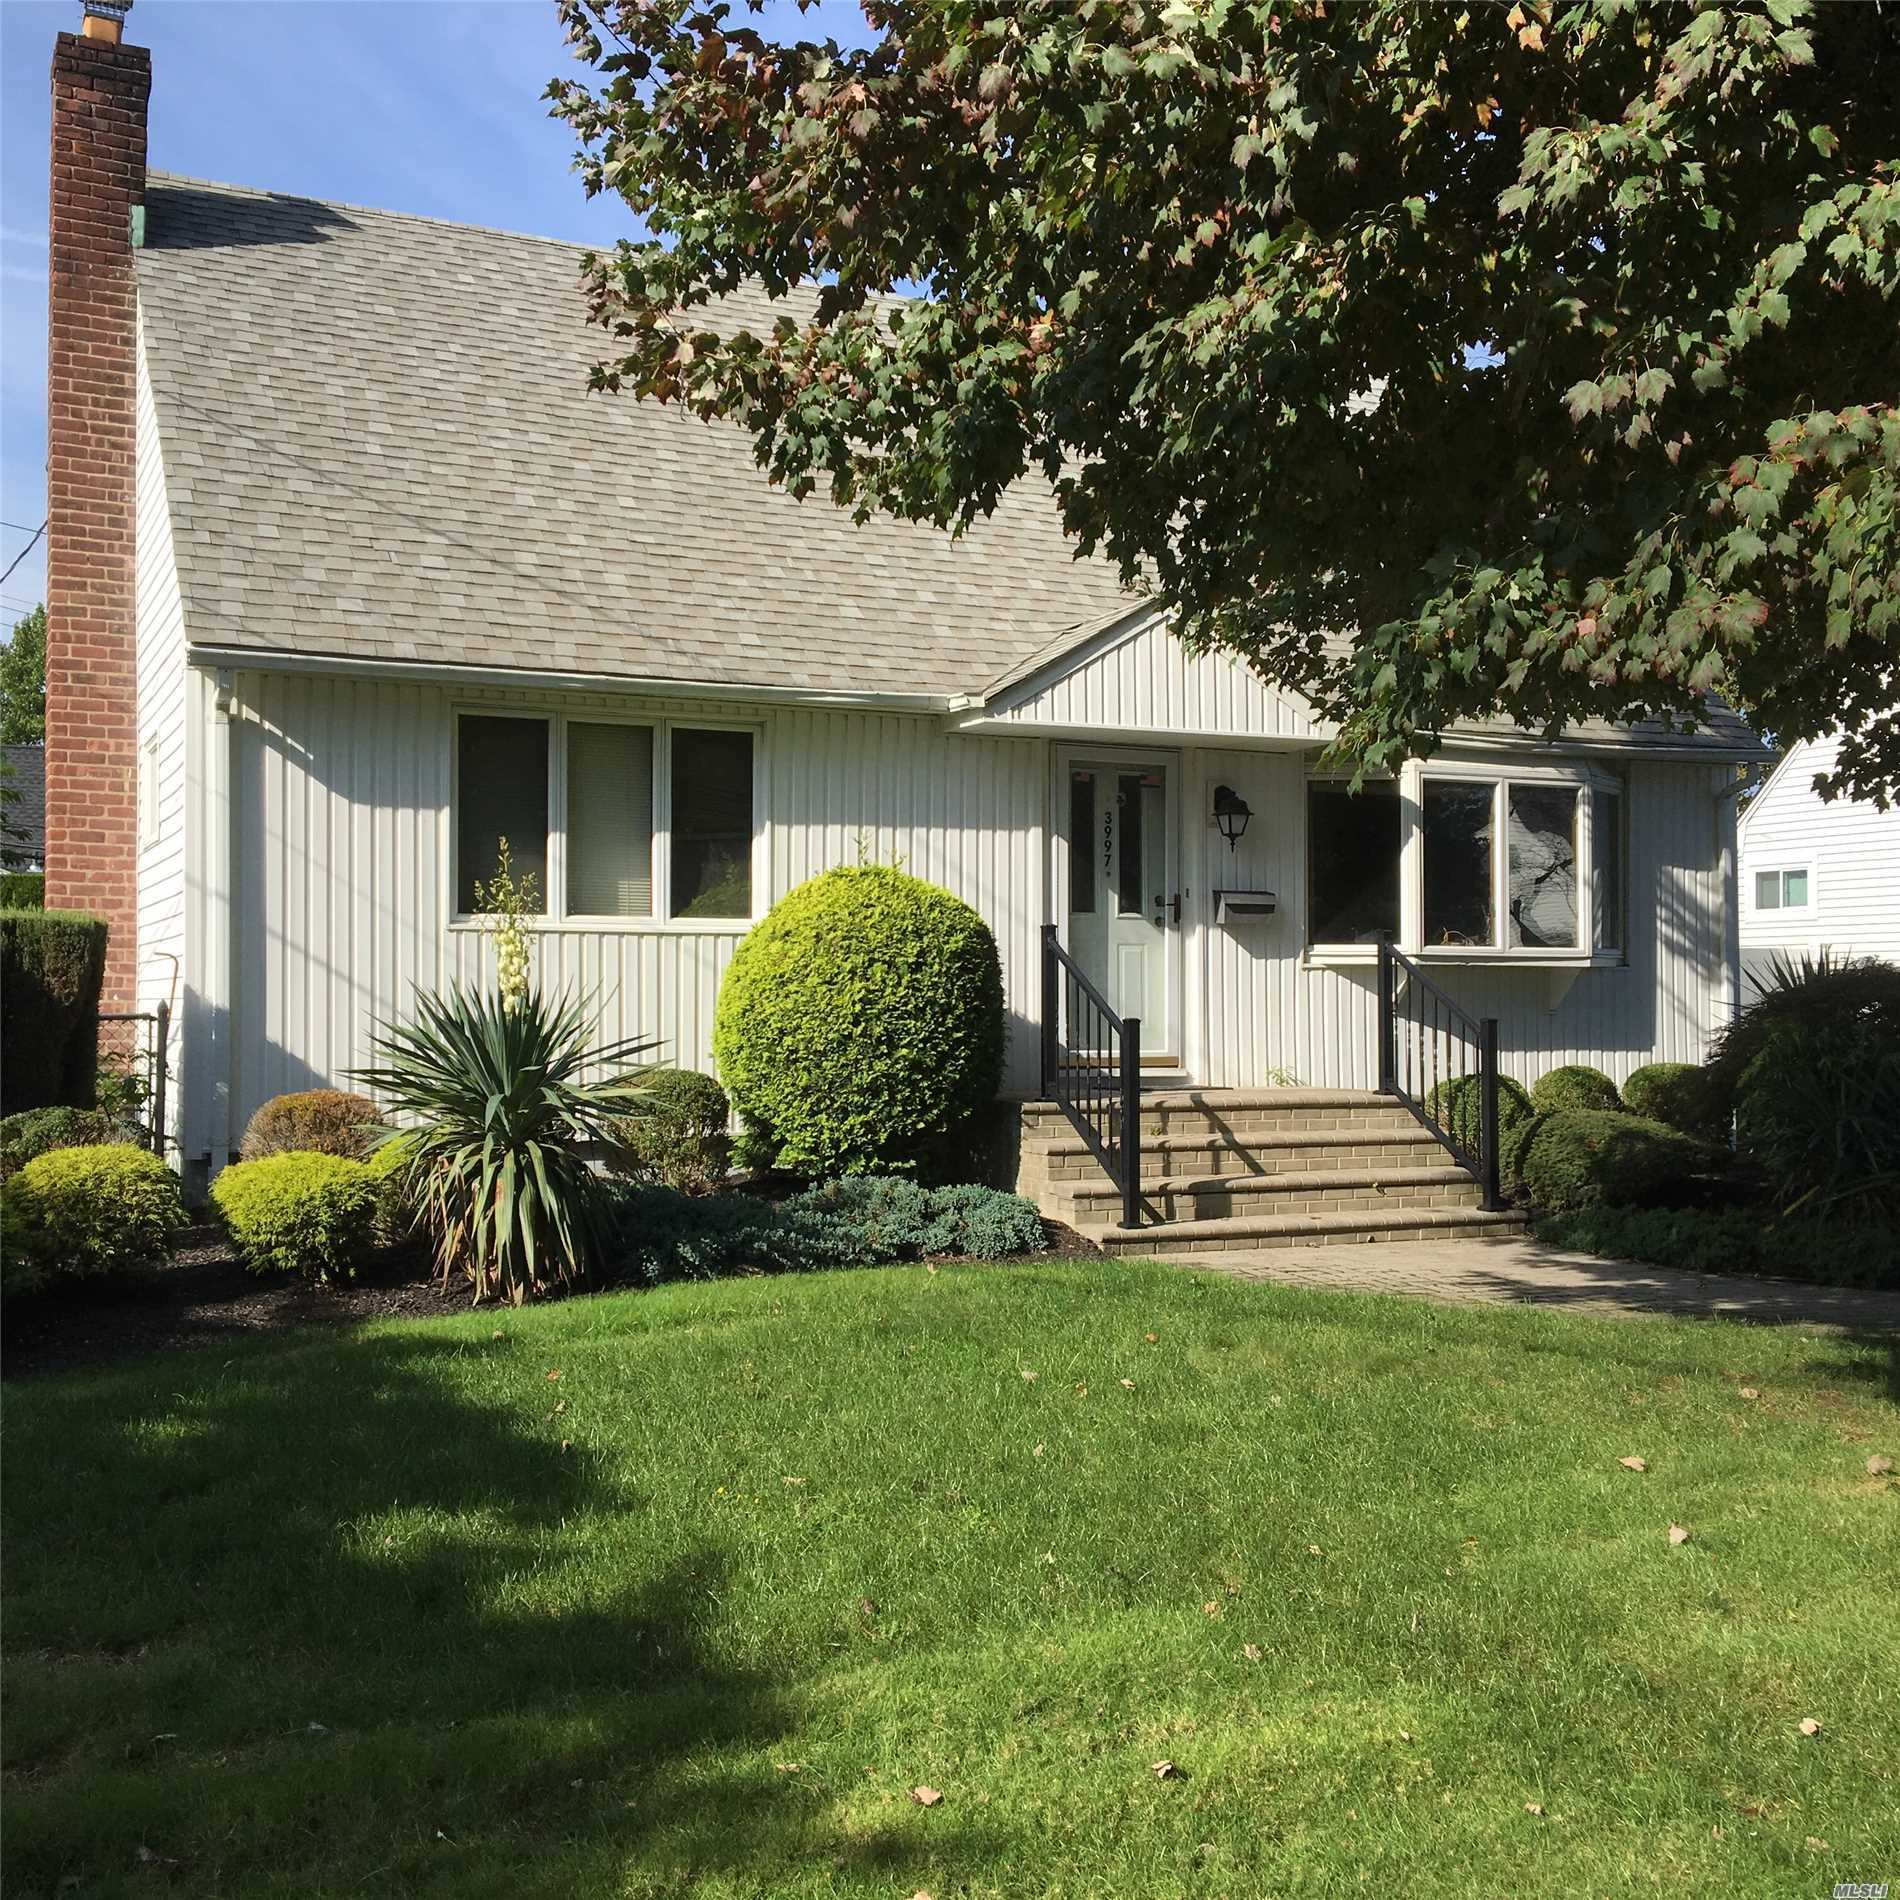 Spacious Expanded Cape, Vinyl Siding, Architectural Roof, Updated Bath, Hardwood Floors, 200 Amp Electric Svc, Cac Ready, Fin Basement W/ Half Bath, Separate Hw Heater, 2 Car Det Garage, Front & Rear Pavers, Private Yard, Excellent Schools!